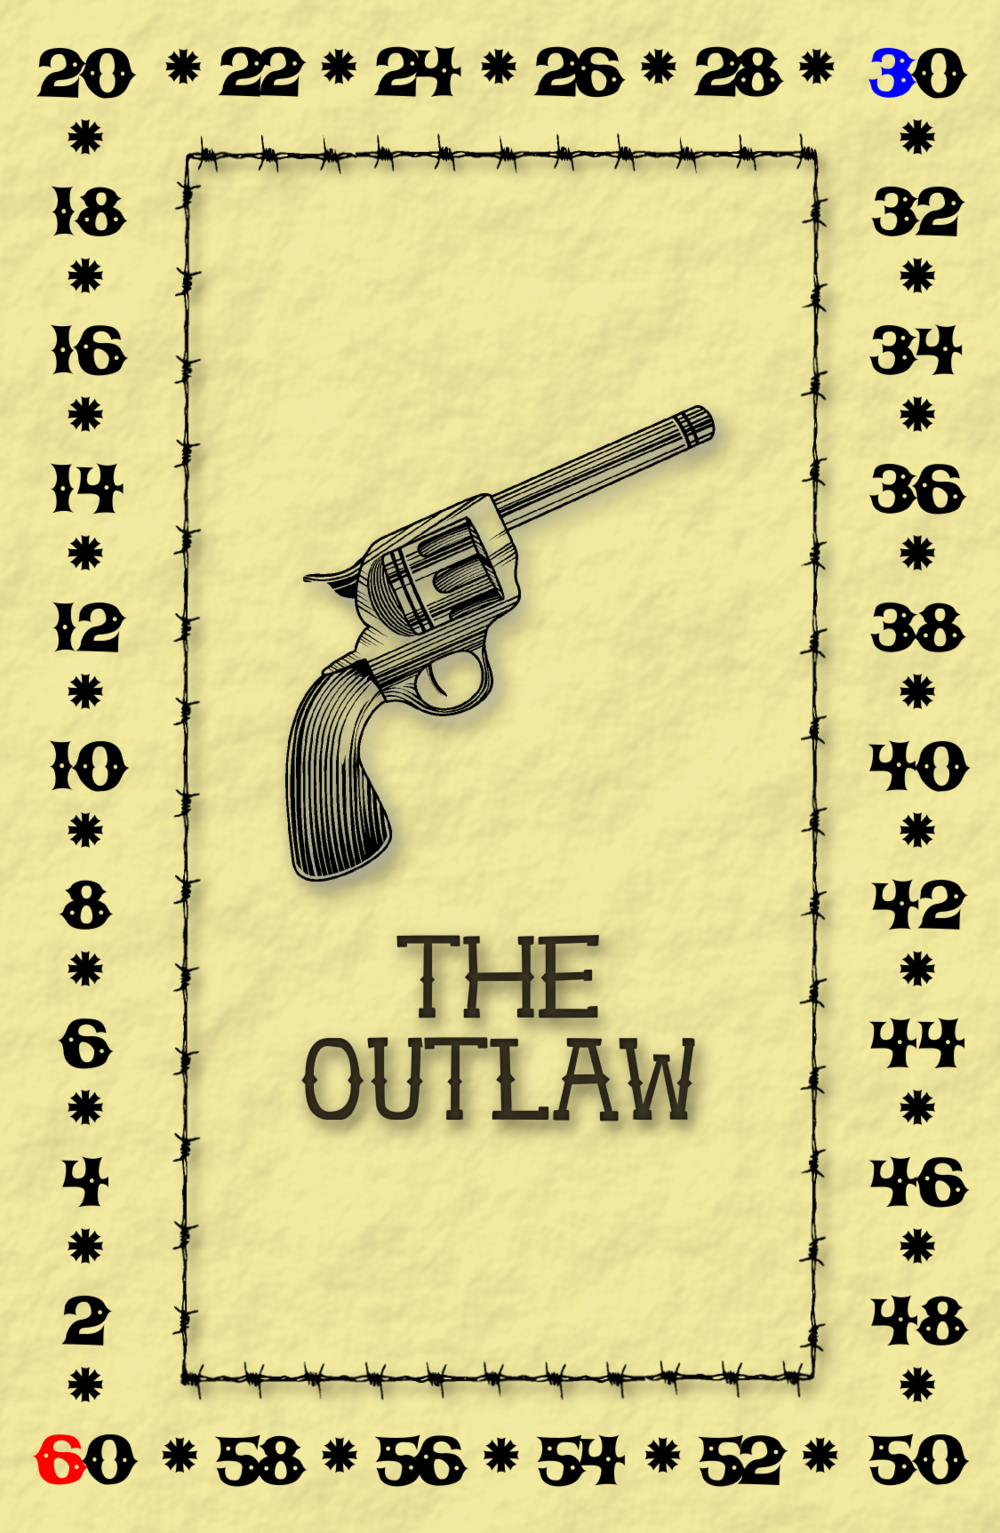 Score Card-Outlaw.png